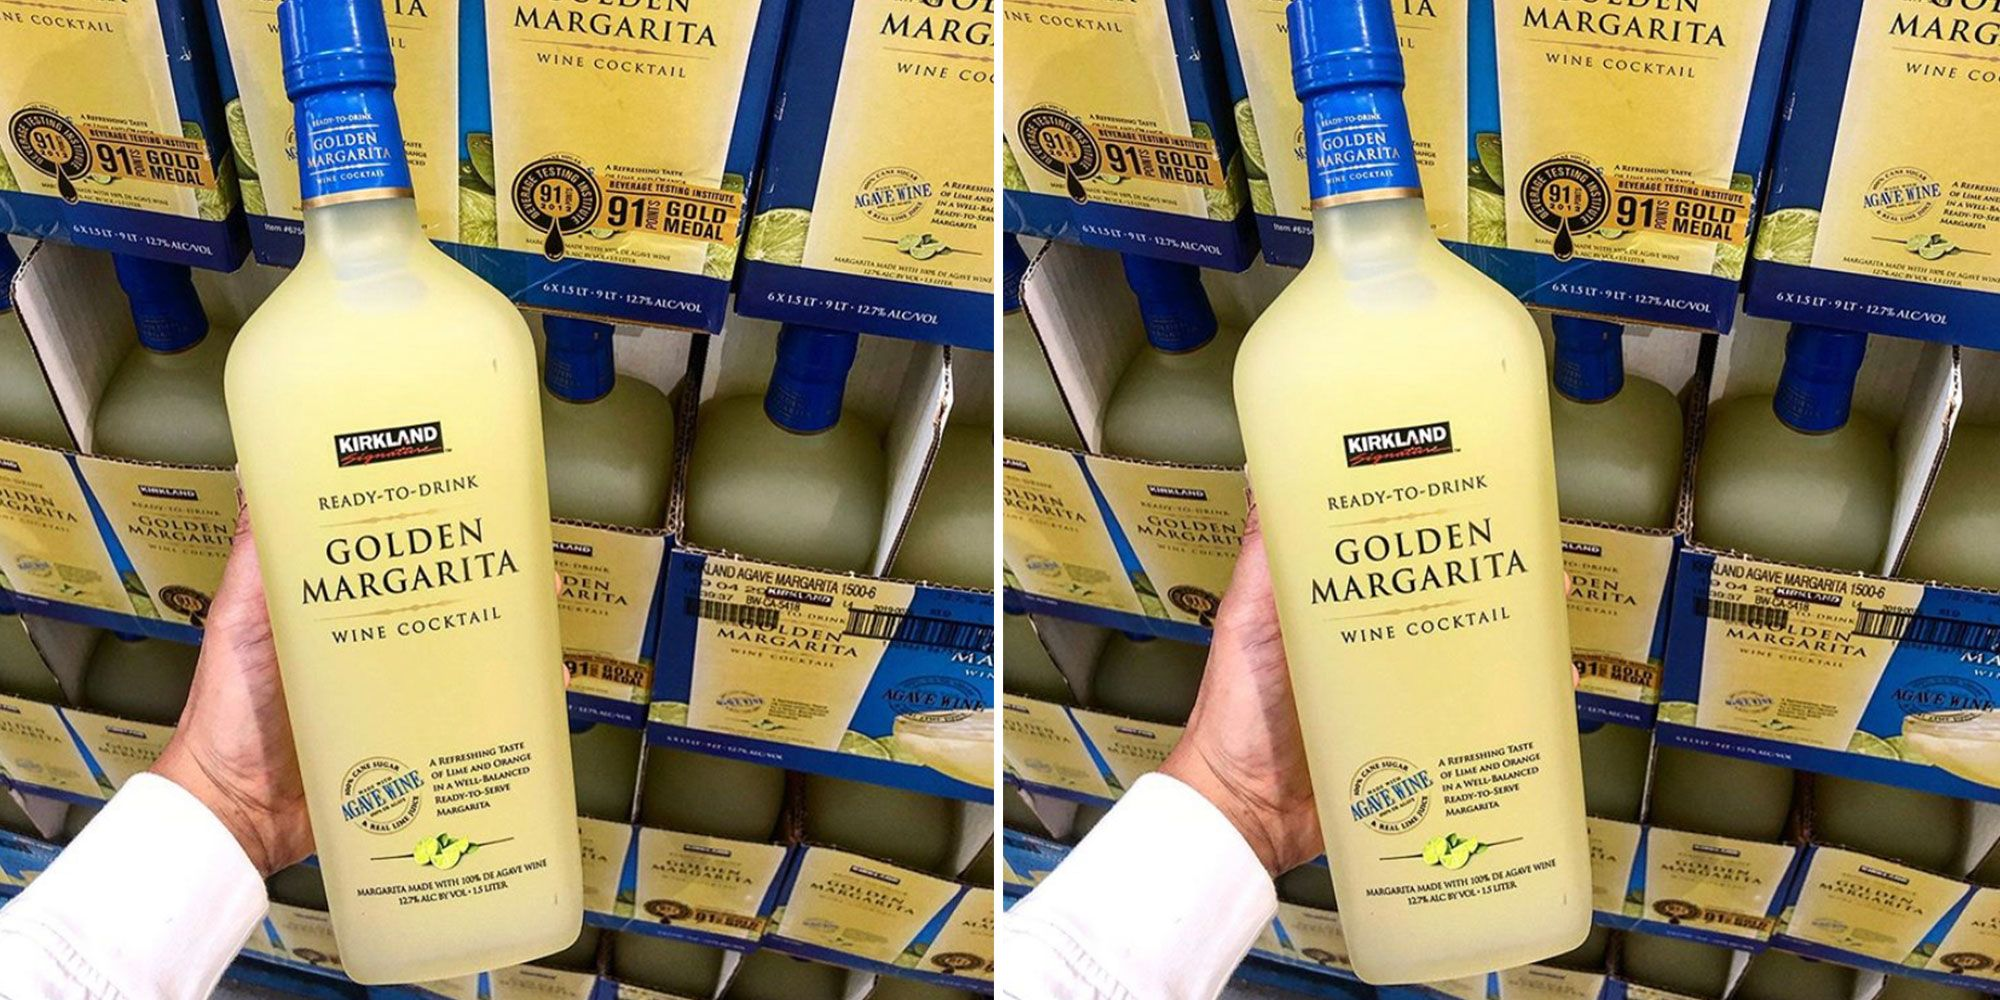 Costco Has Its Own HUGE Bottle of Golden Margarita That's Ready to Serve Over Ice